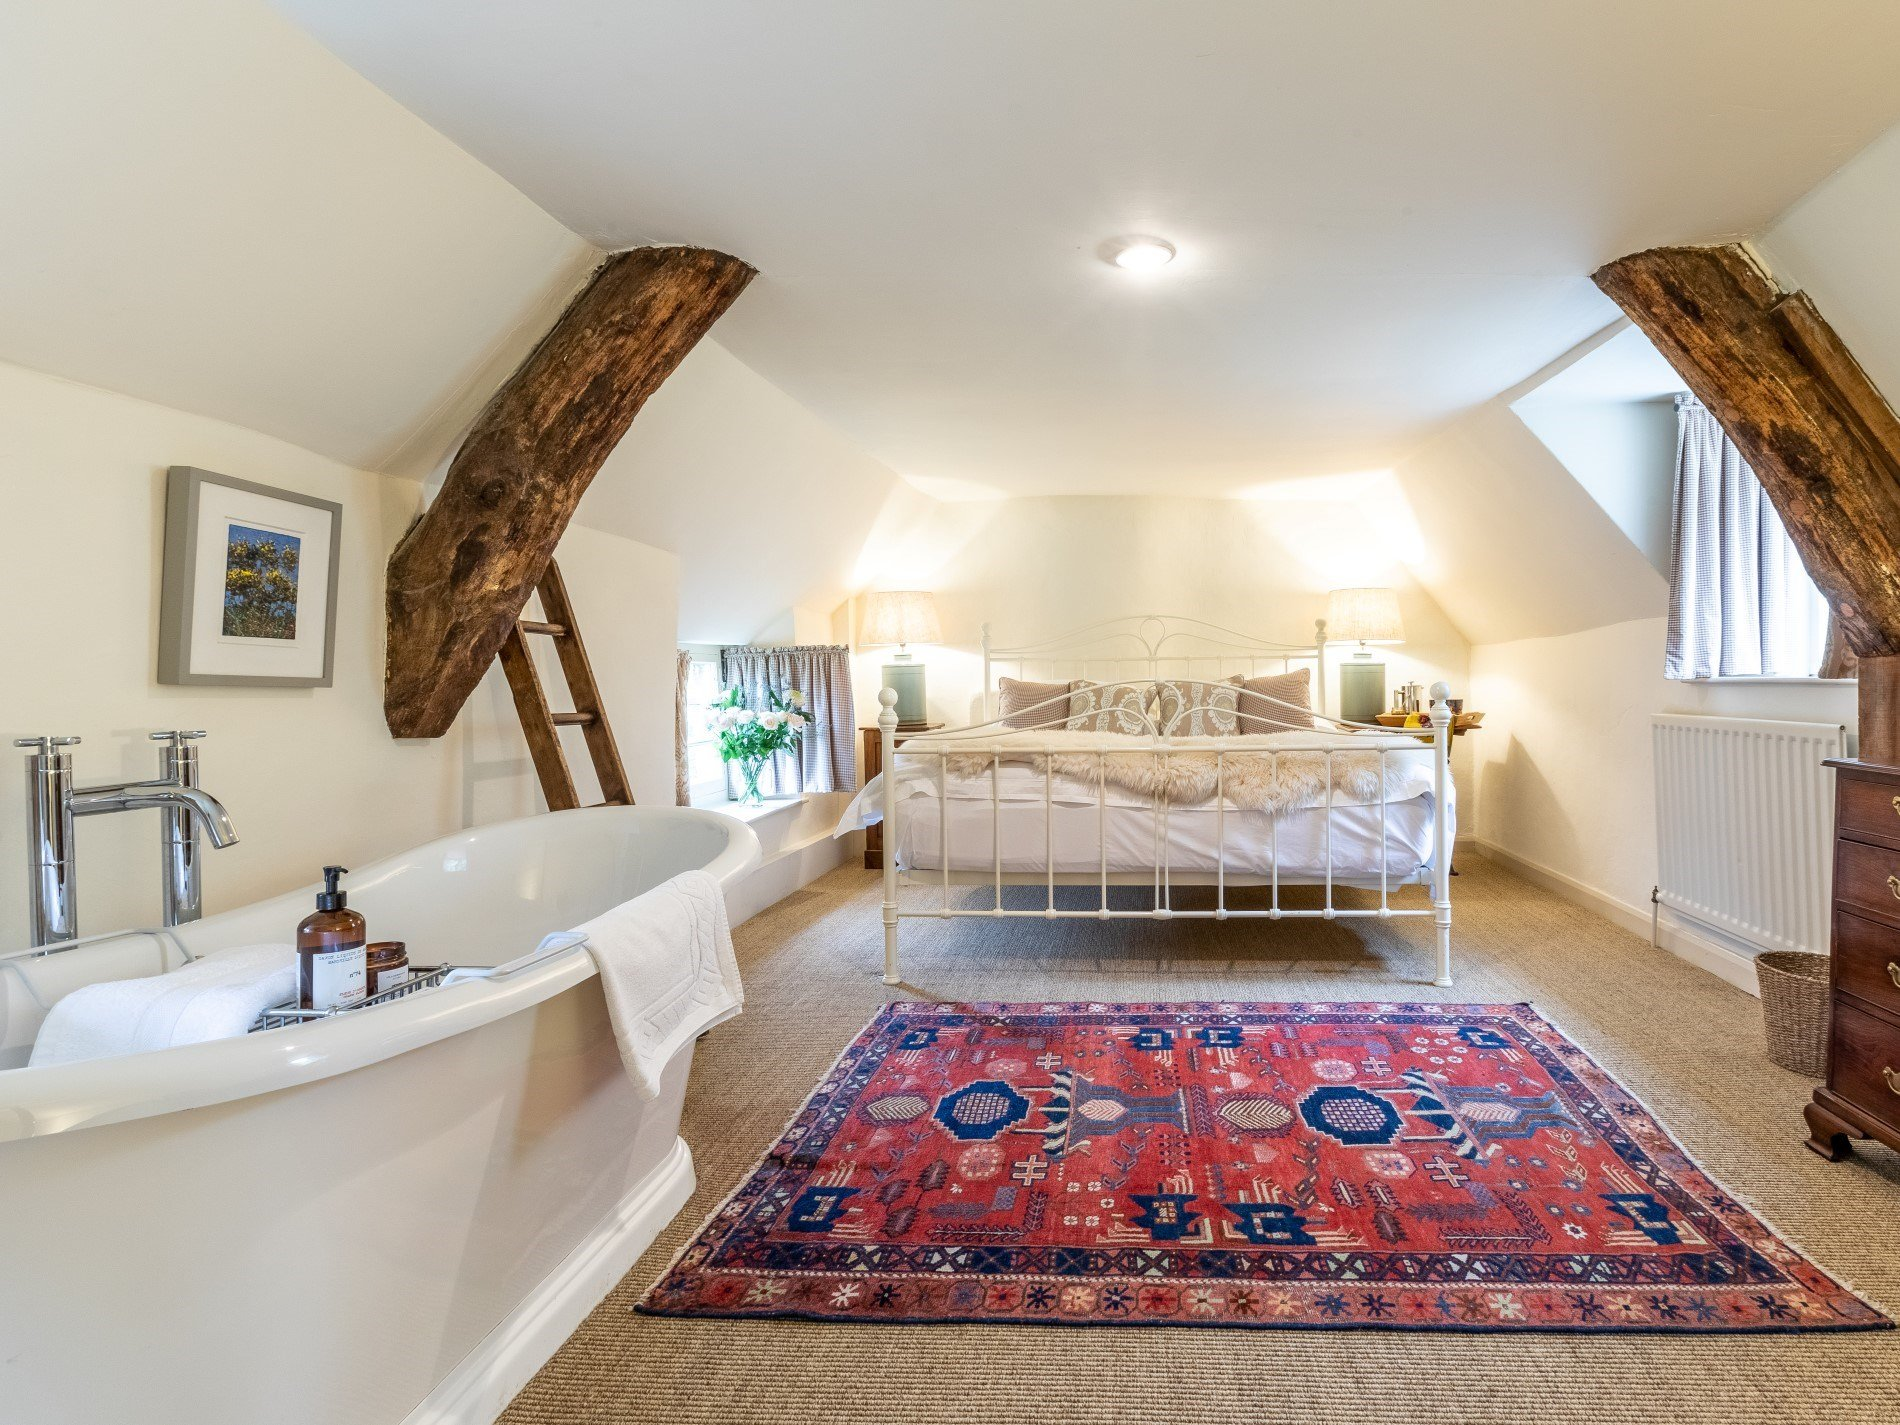 Super-king-size bedroom complete with slipper bath